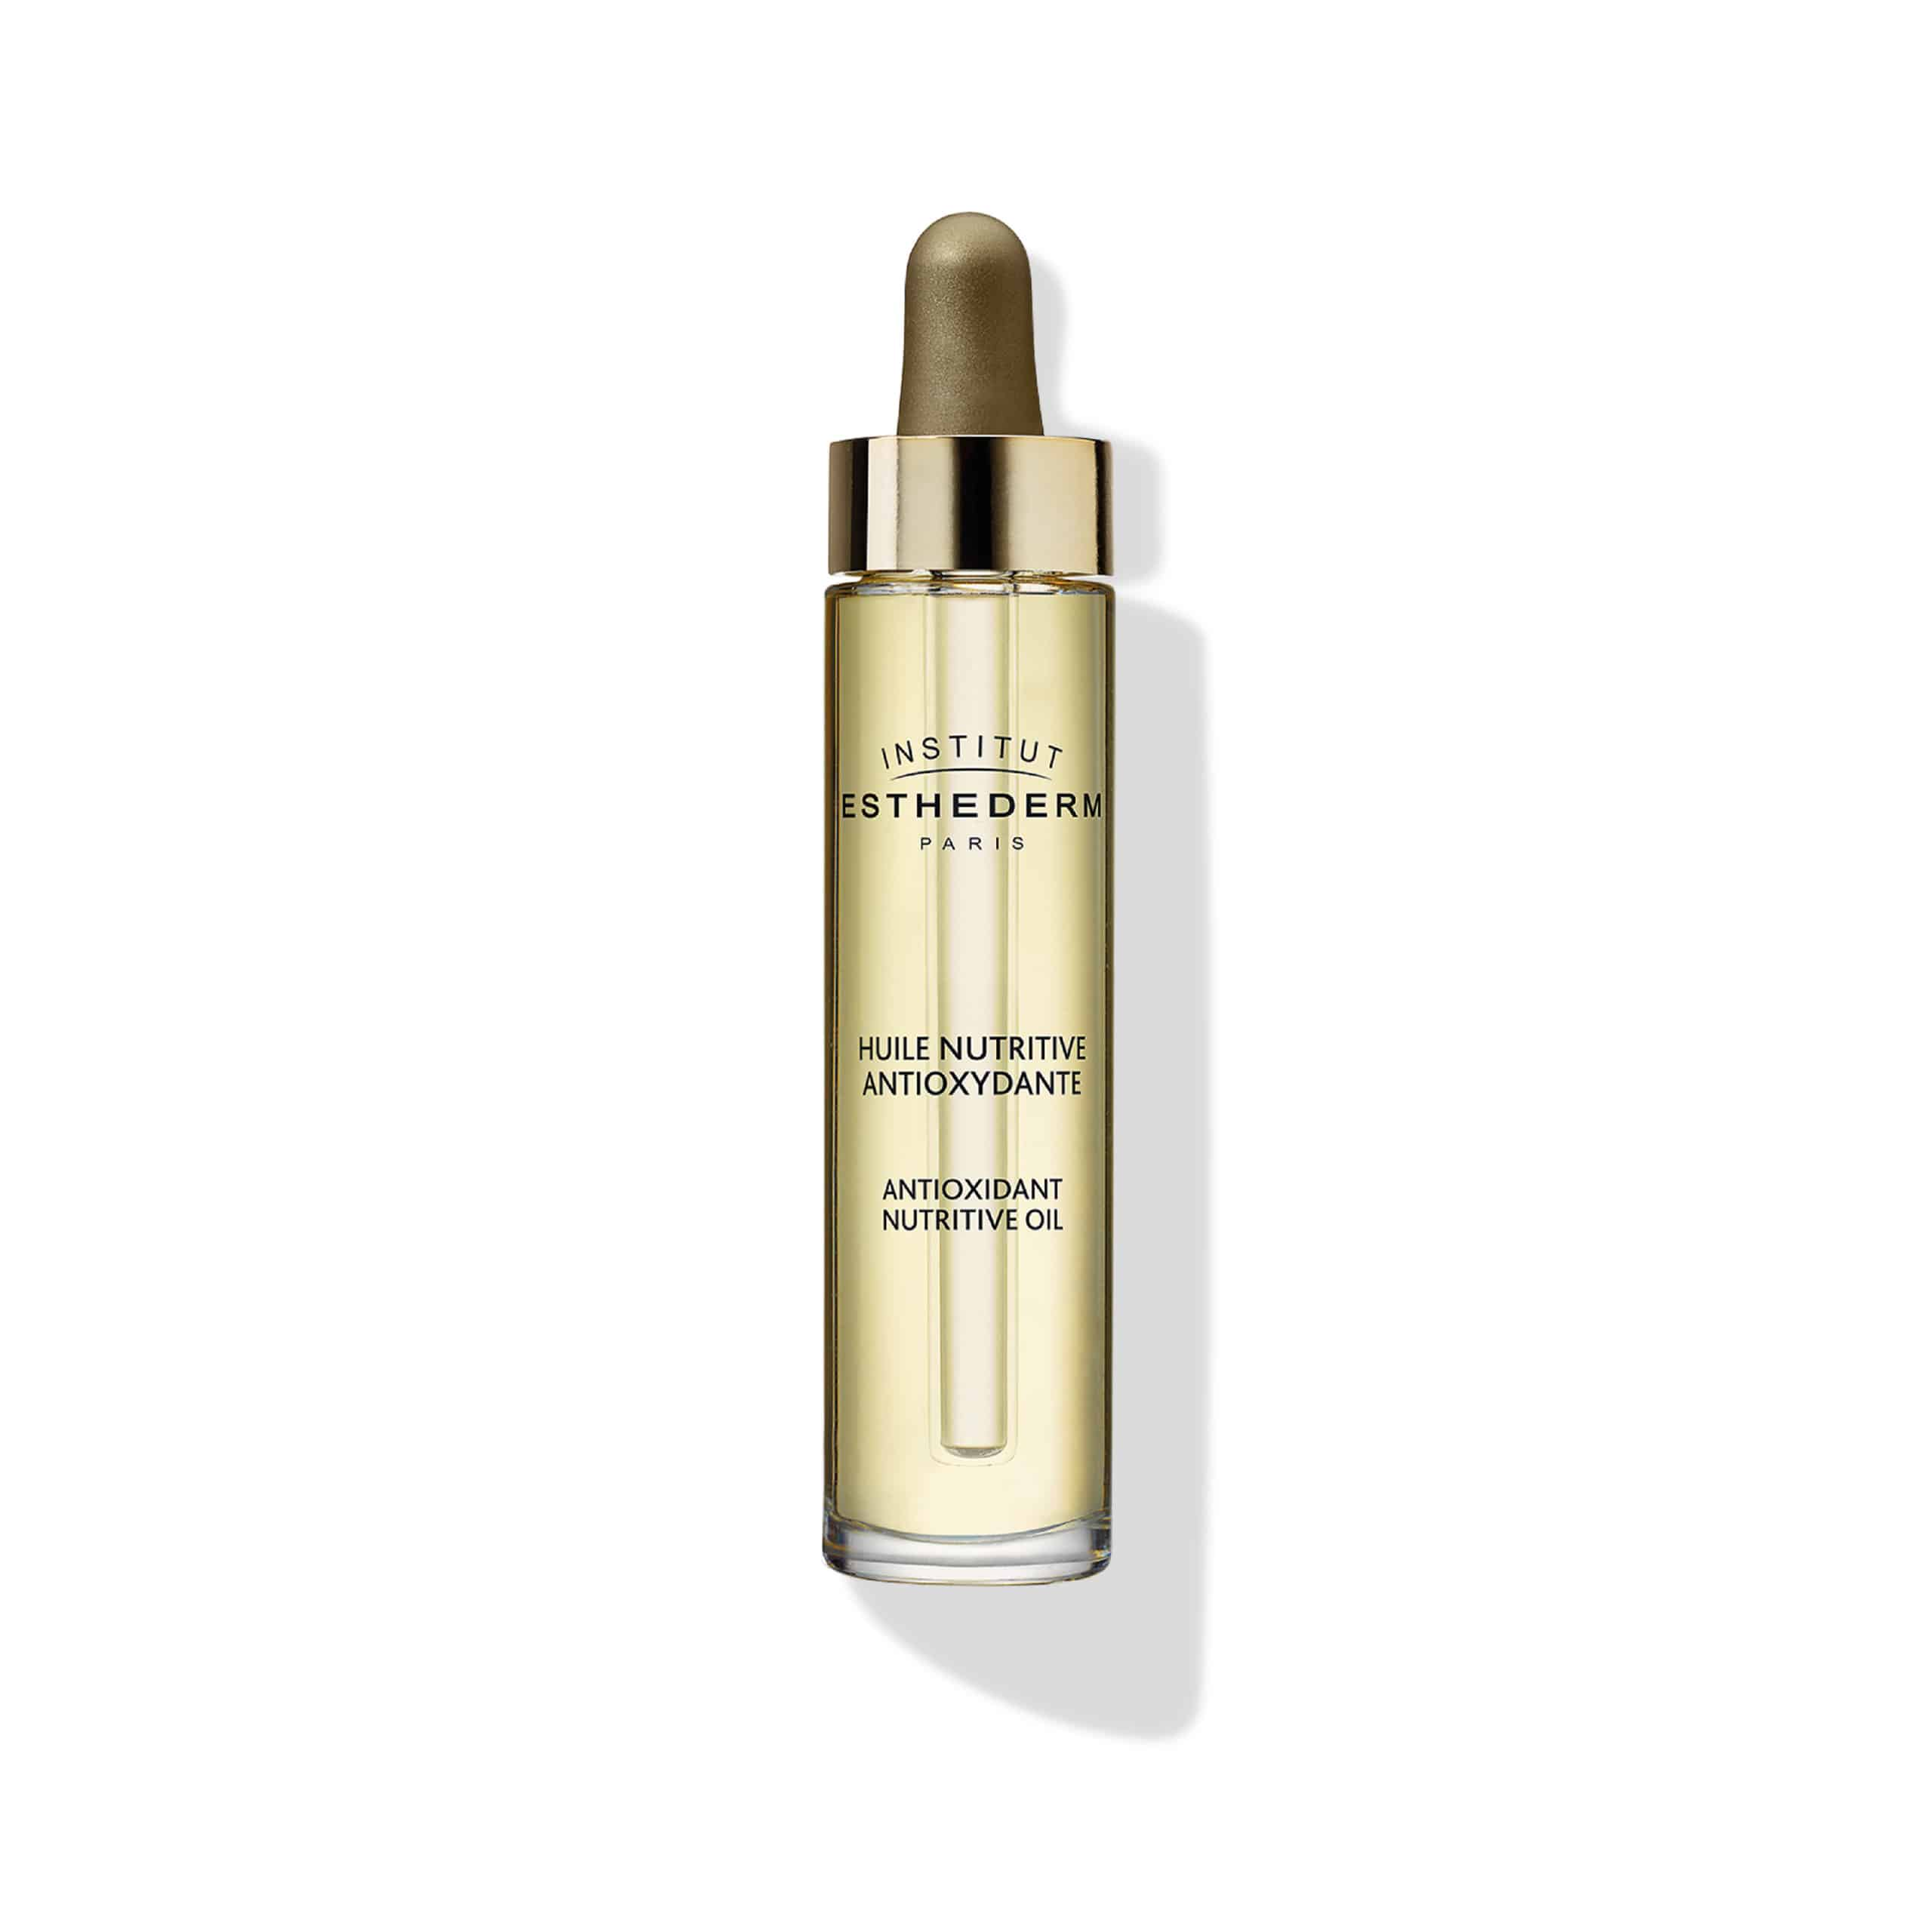 ESTHEDERM product photo, Nutri System Antioxidant Nutritive Oil 30ml, revitalizing care, essential elements, skin nutrition